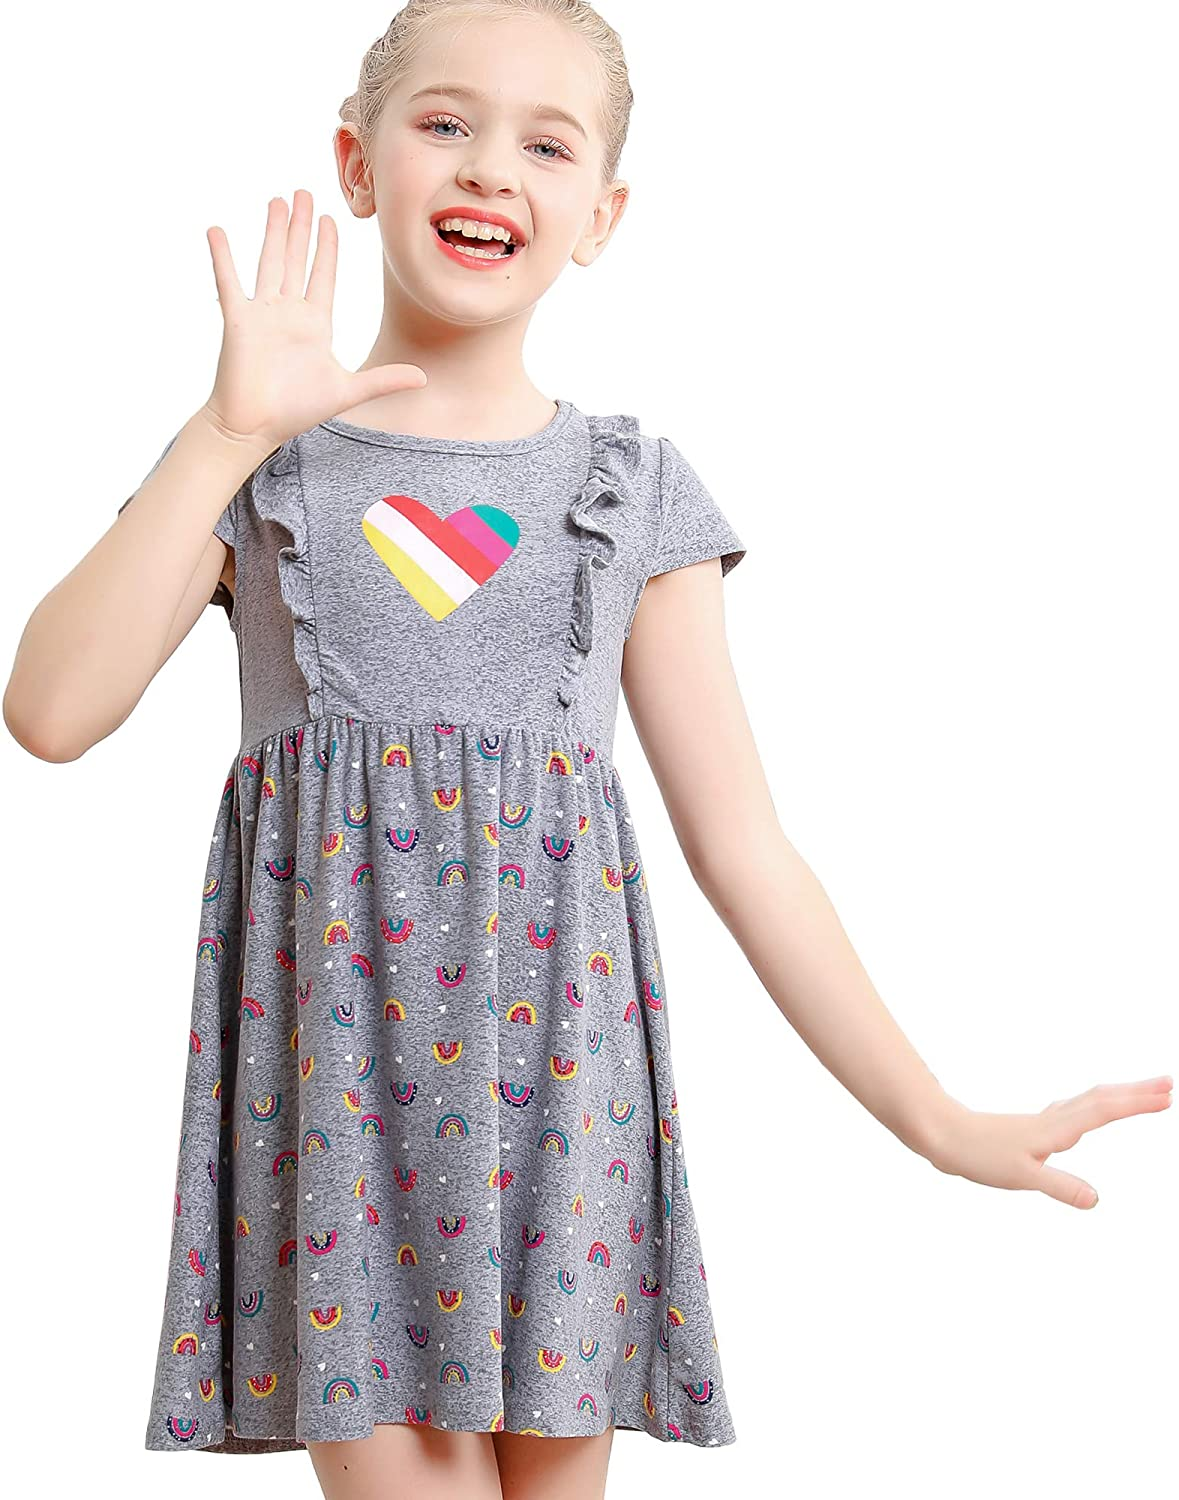 Financial sales sale V.GRIN Girls Long Selling rankings Sleeve Dress Twirly Spring Floral Stret Soft